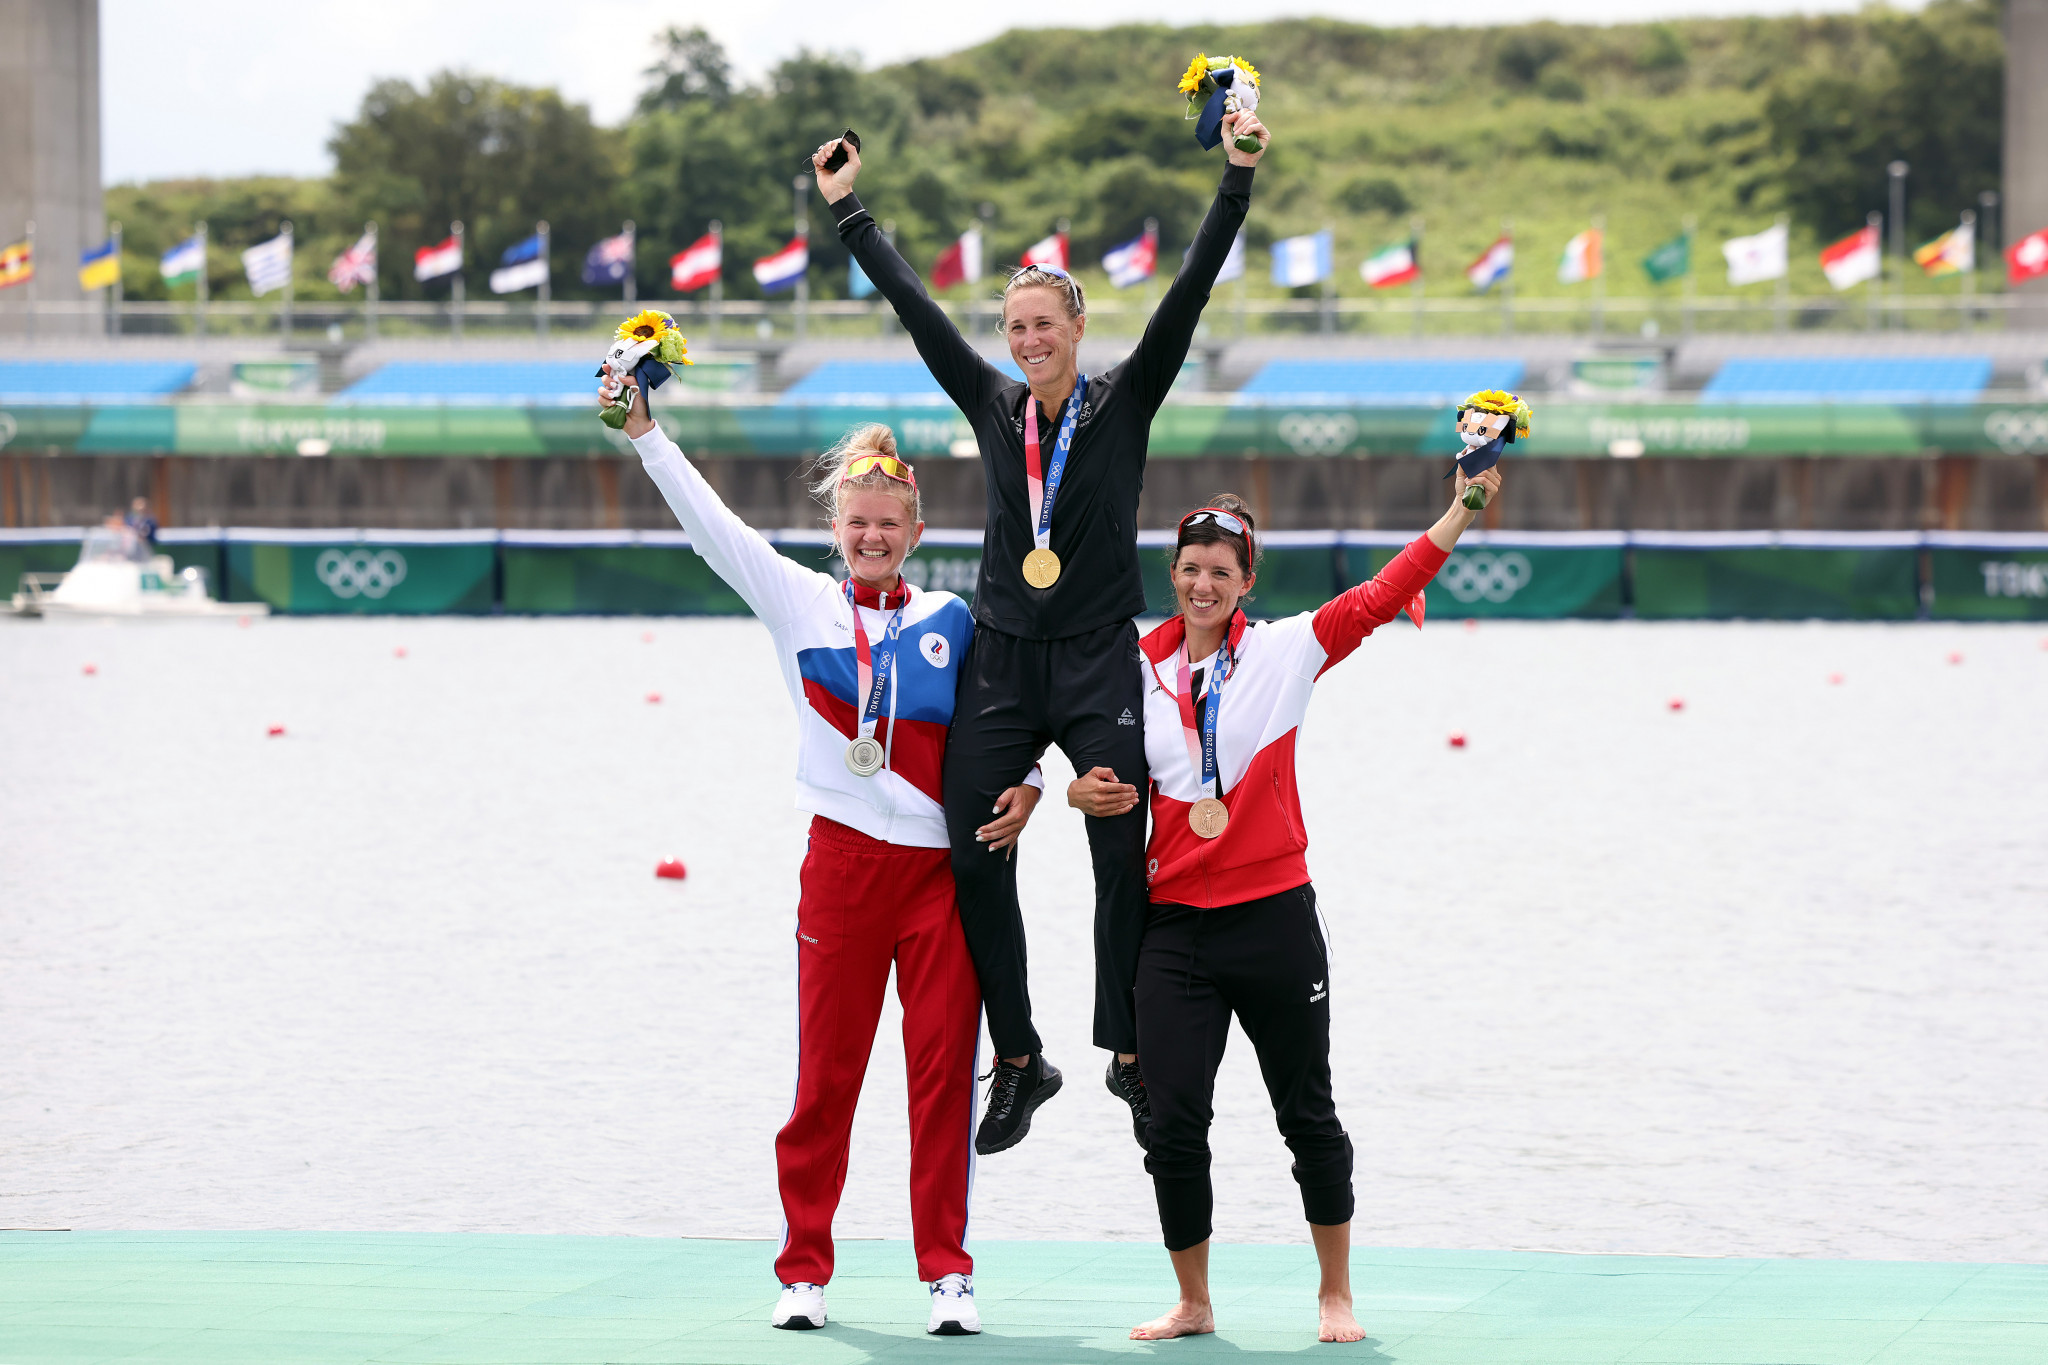 New Zealand's Emma Twigg is held aloft by Russia's Hanna Prakatsen and Austria's Magdalena Lobnig after winning at the fourth time of asking at the Olympics ©Getty Images